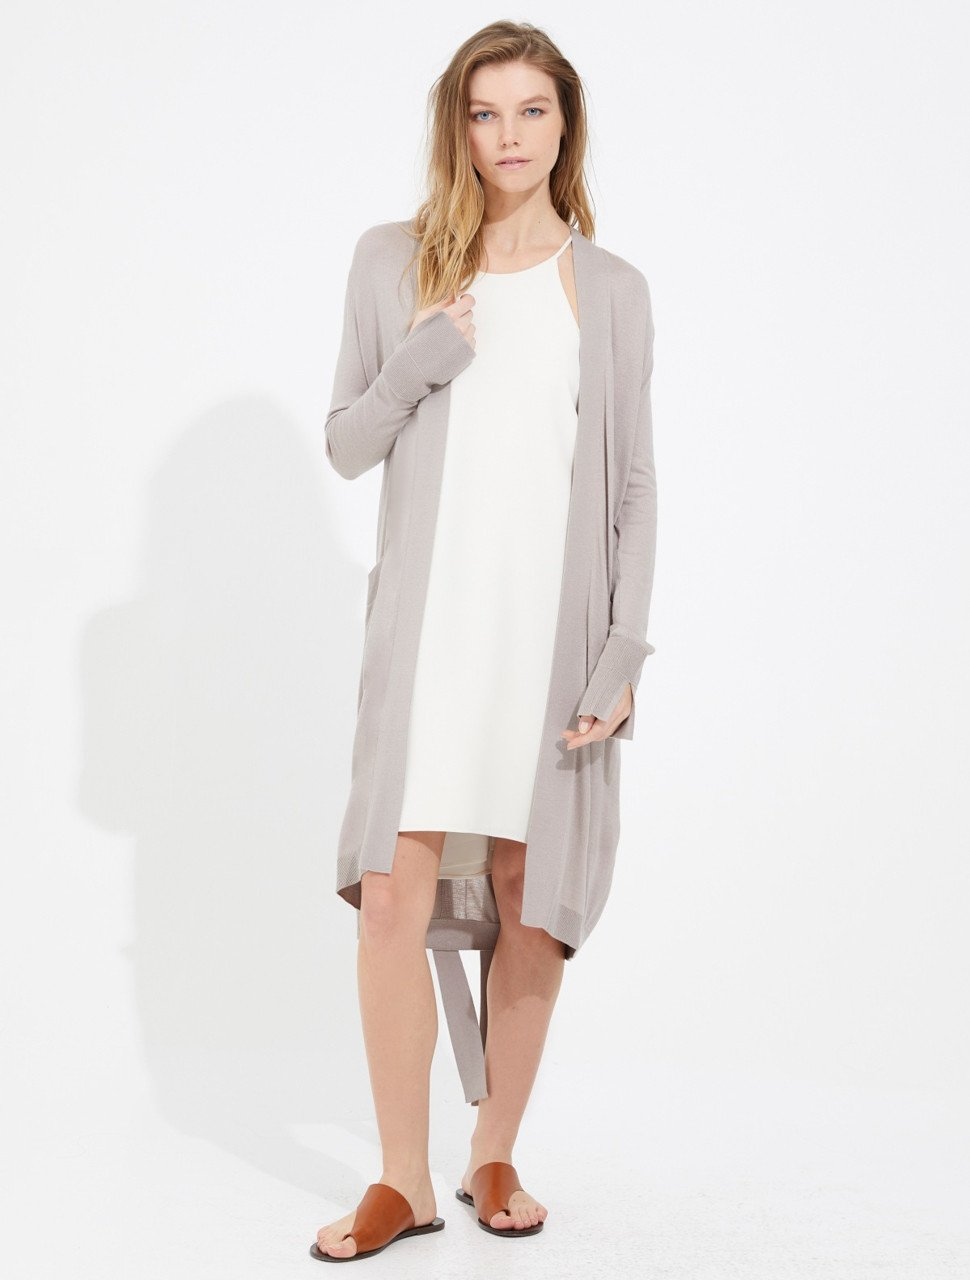 SILKY CASHMERE CARDIGAN